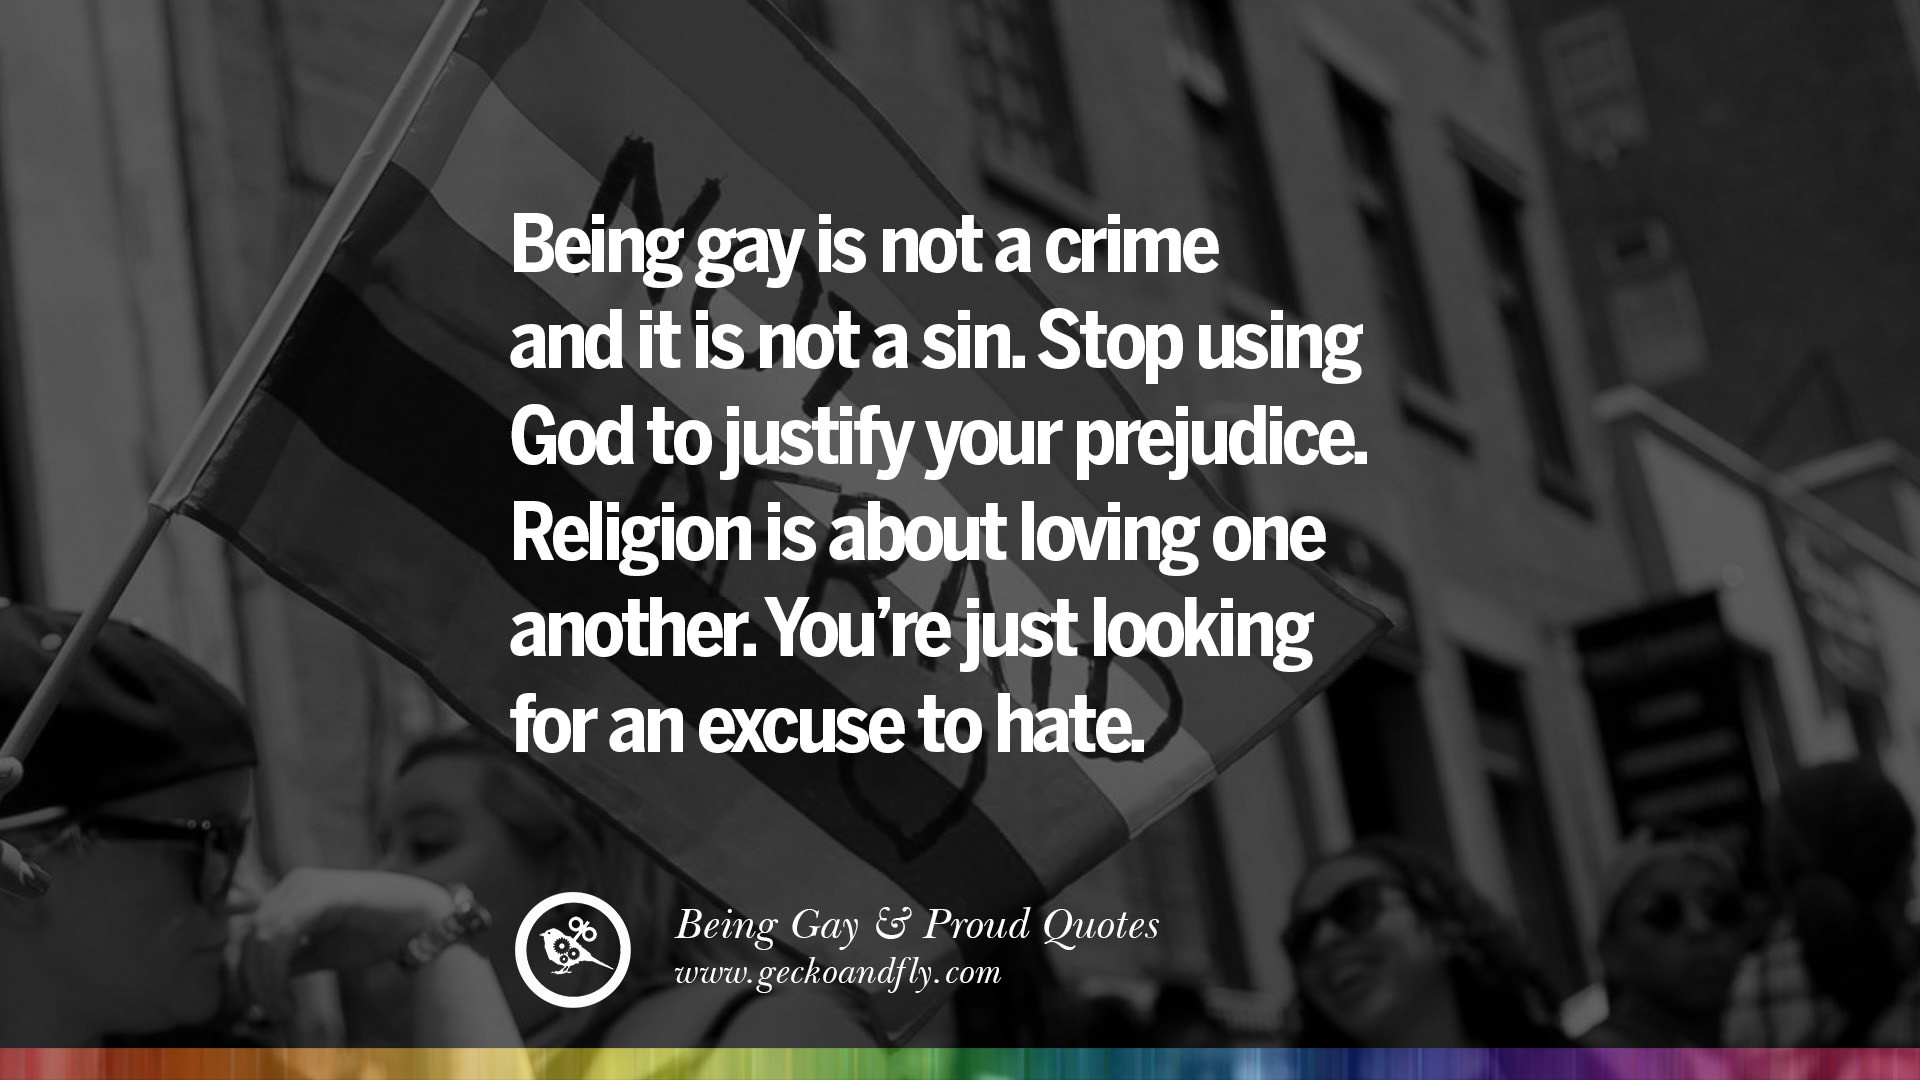 from Ali pro gay rights quotes